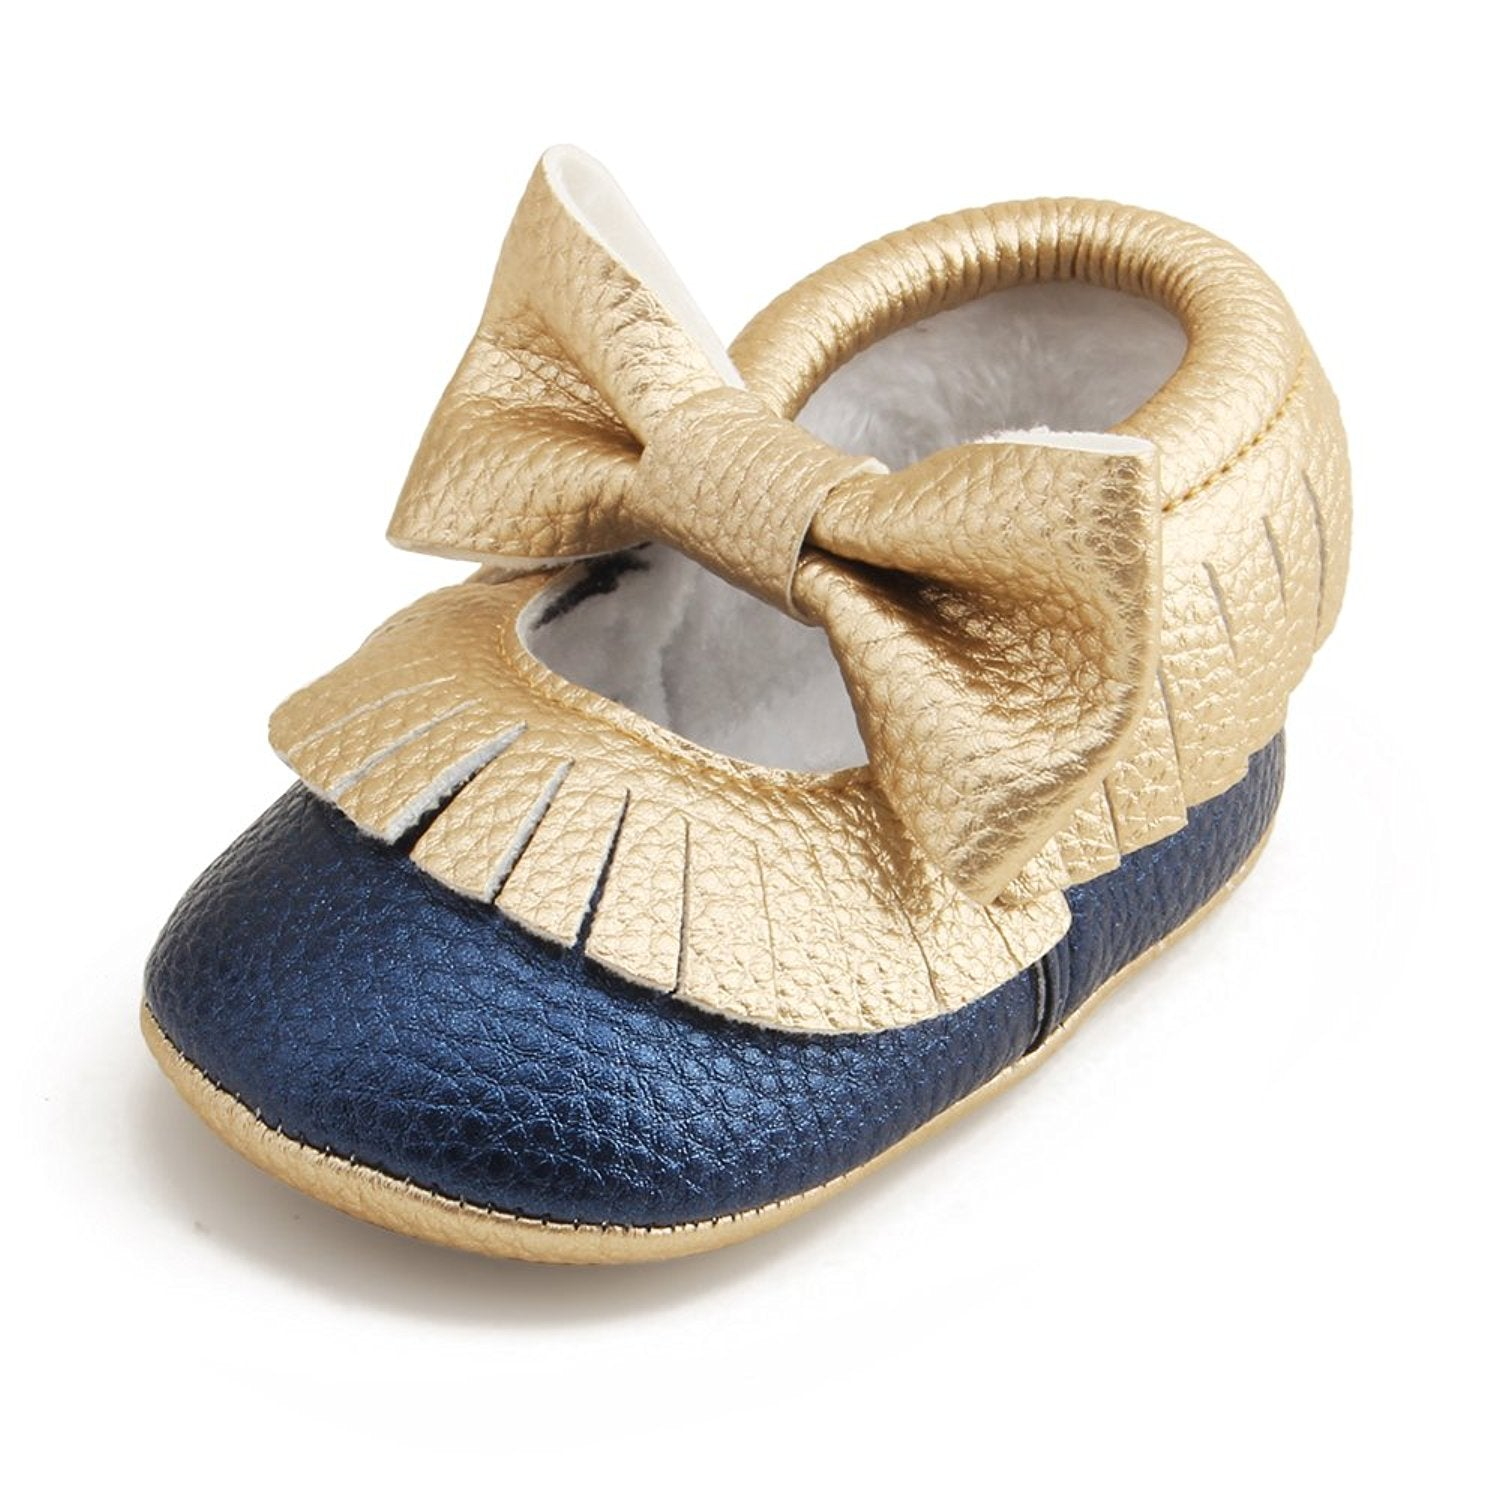 Delebao Infant Toddler Baby Soft Sole Tassel Bowknot Moccasinss Crib